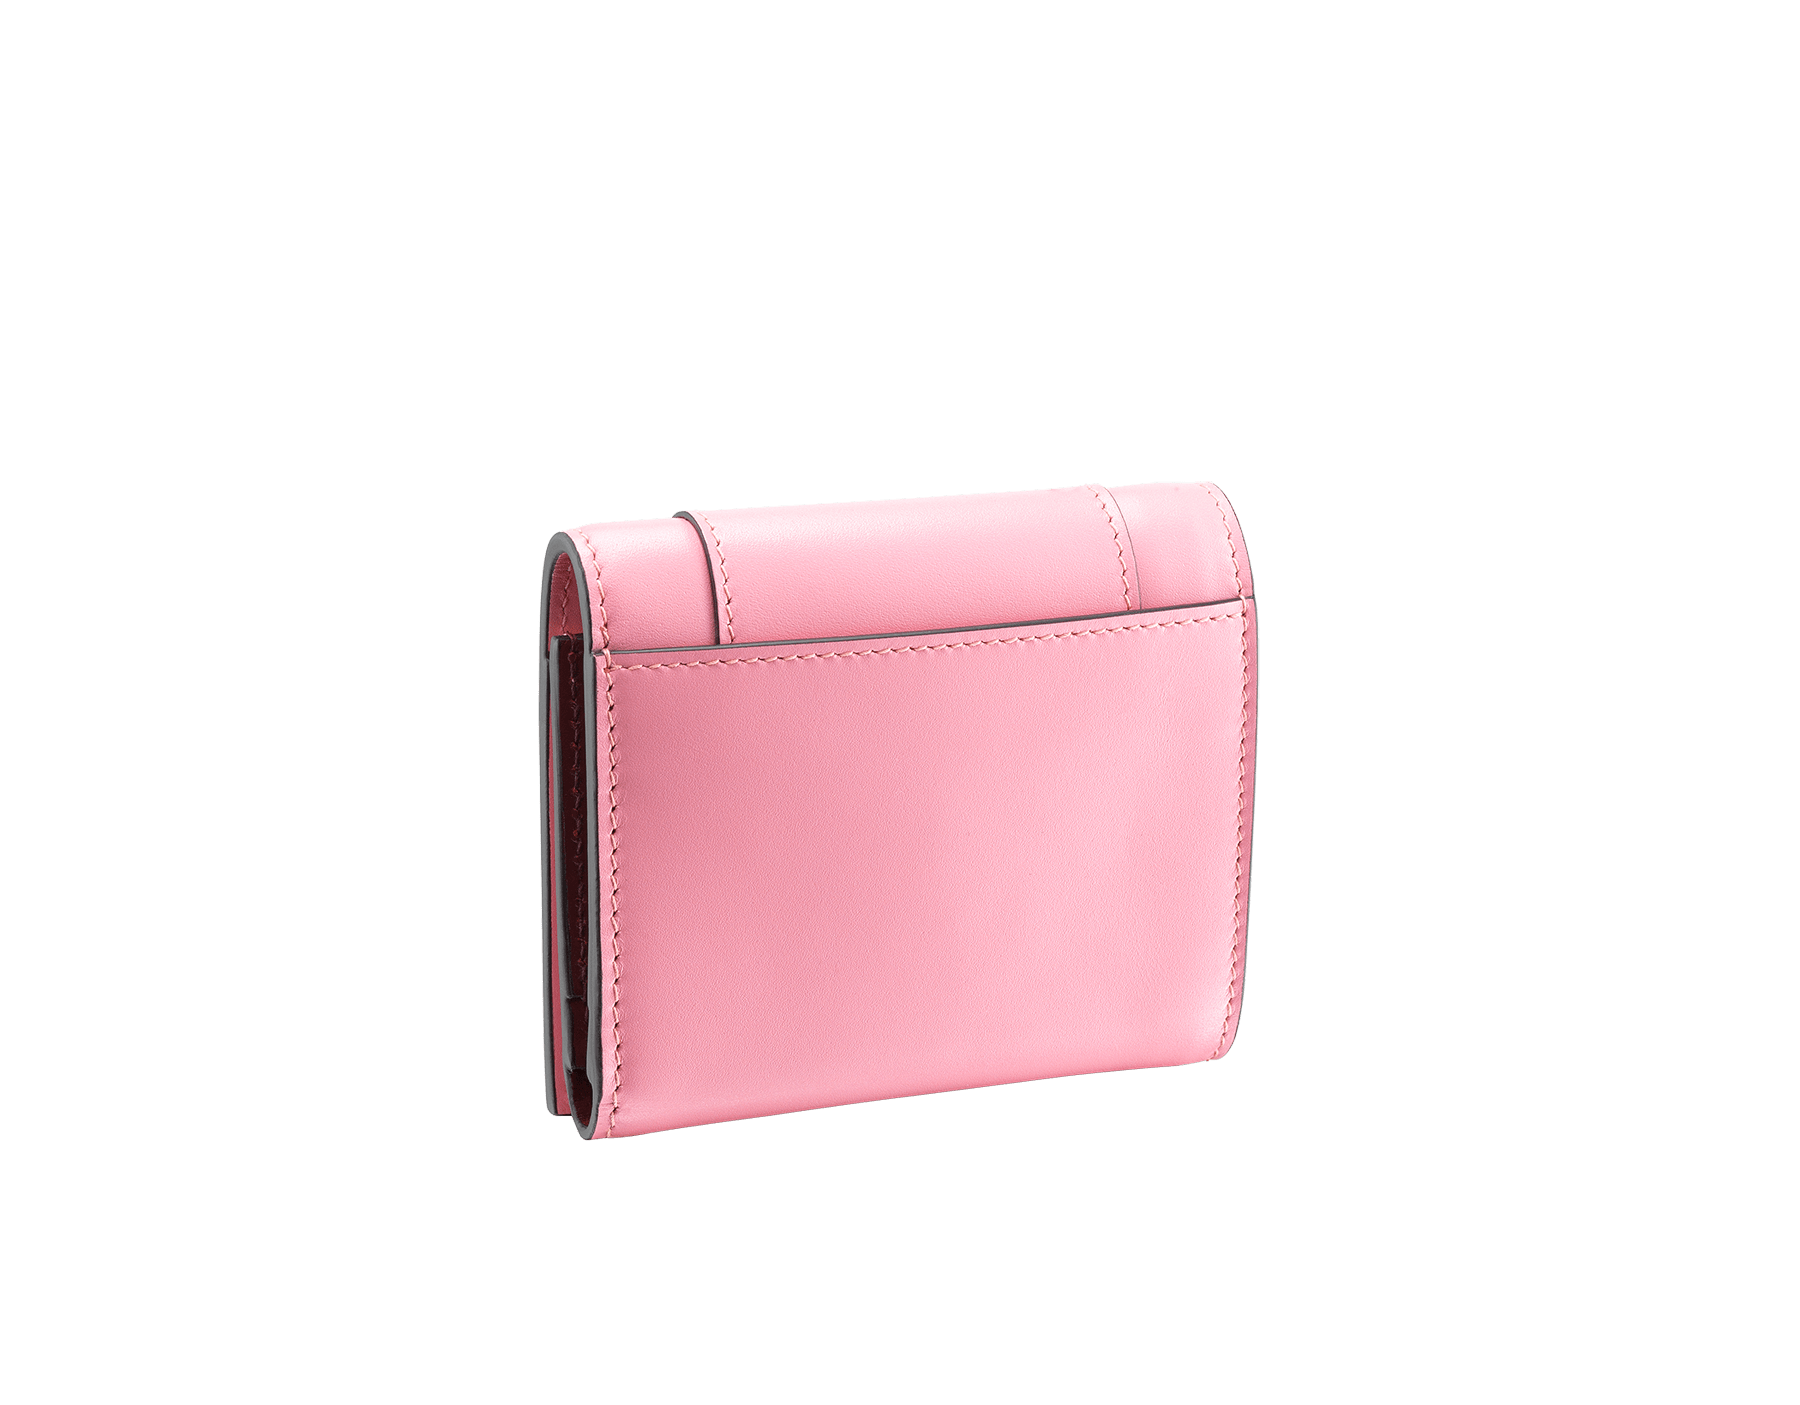 Serpenti Forever super compact wallet in flamingo quartz and roman garnet calf leather. Iconic snakehead zip puller in black and white enamel, with green malachite enamel eyes. 288035 image 3